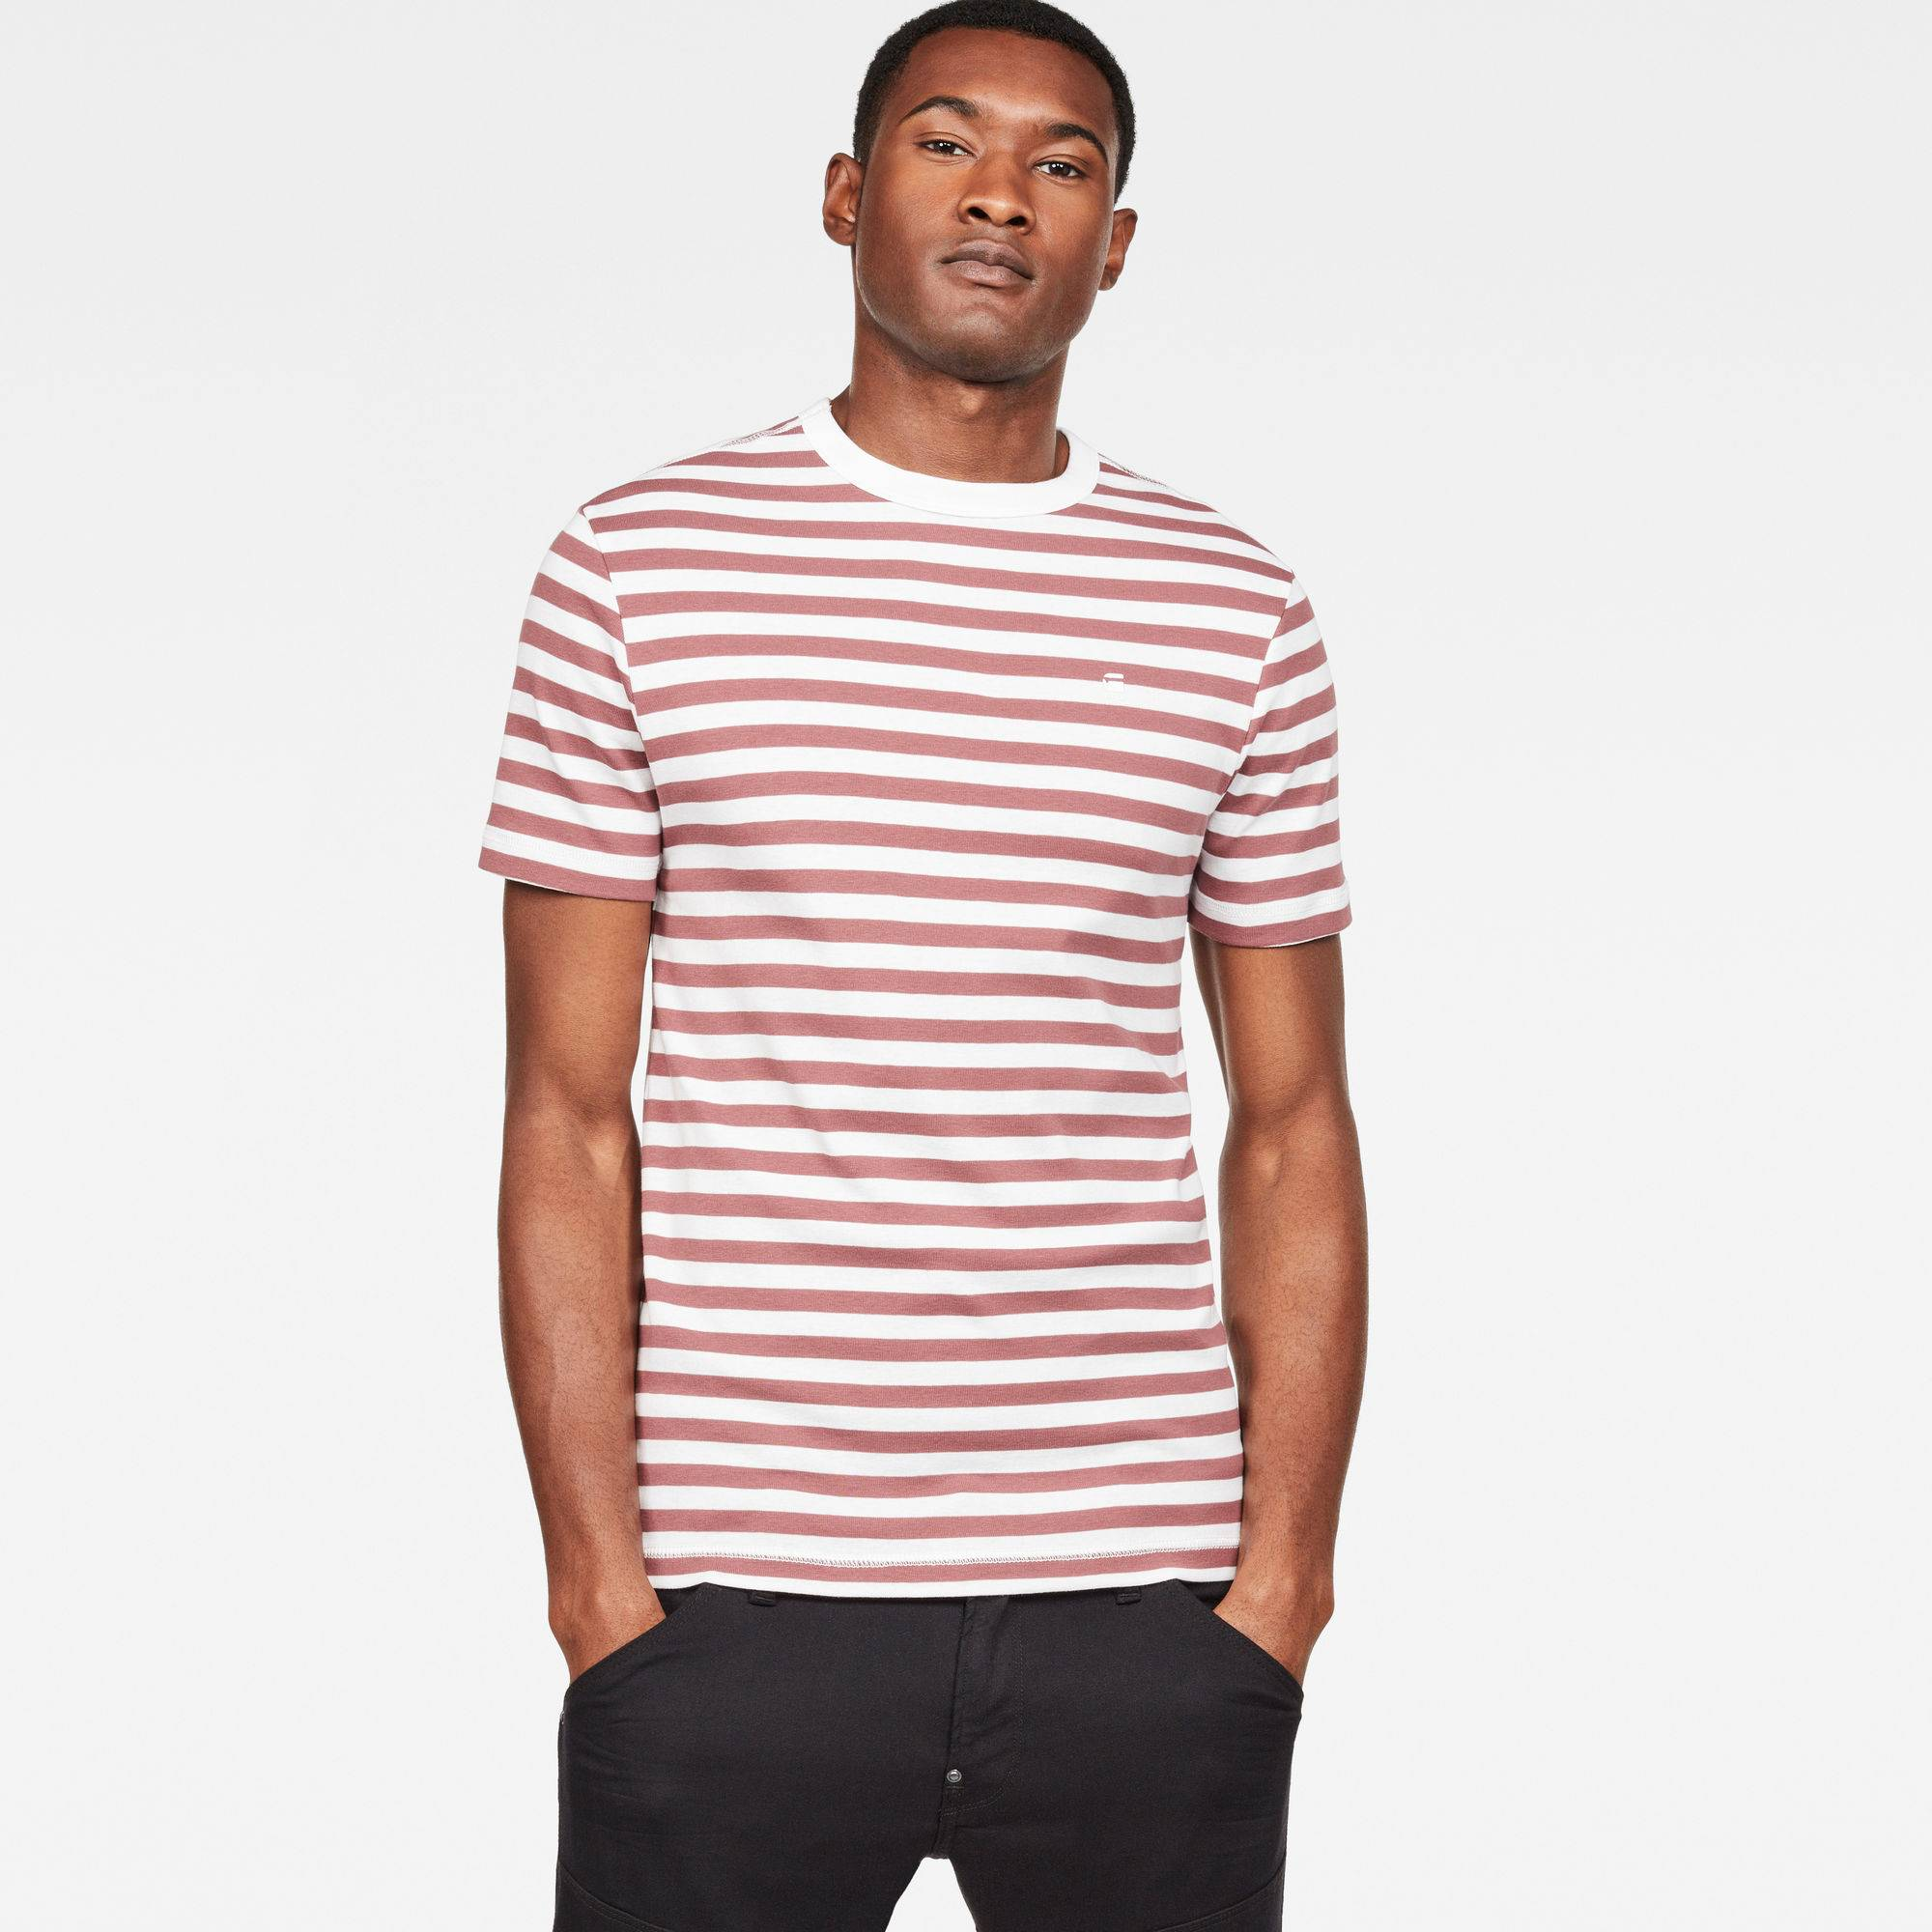 G-Star RAW Kantano Slim T-Shirt